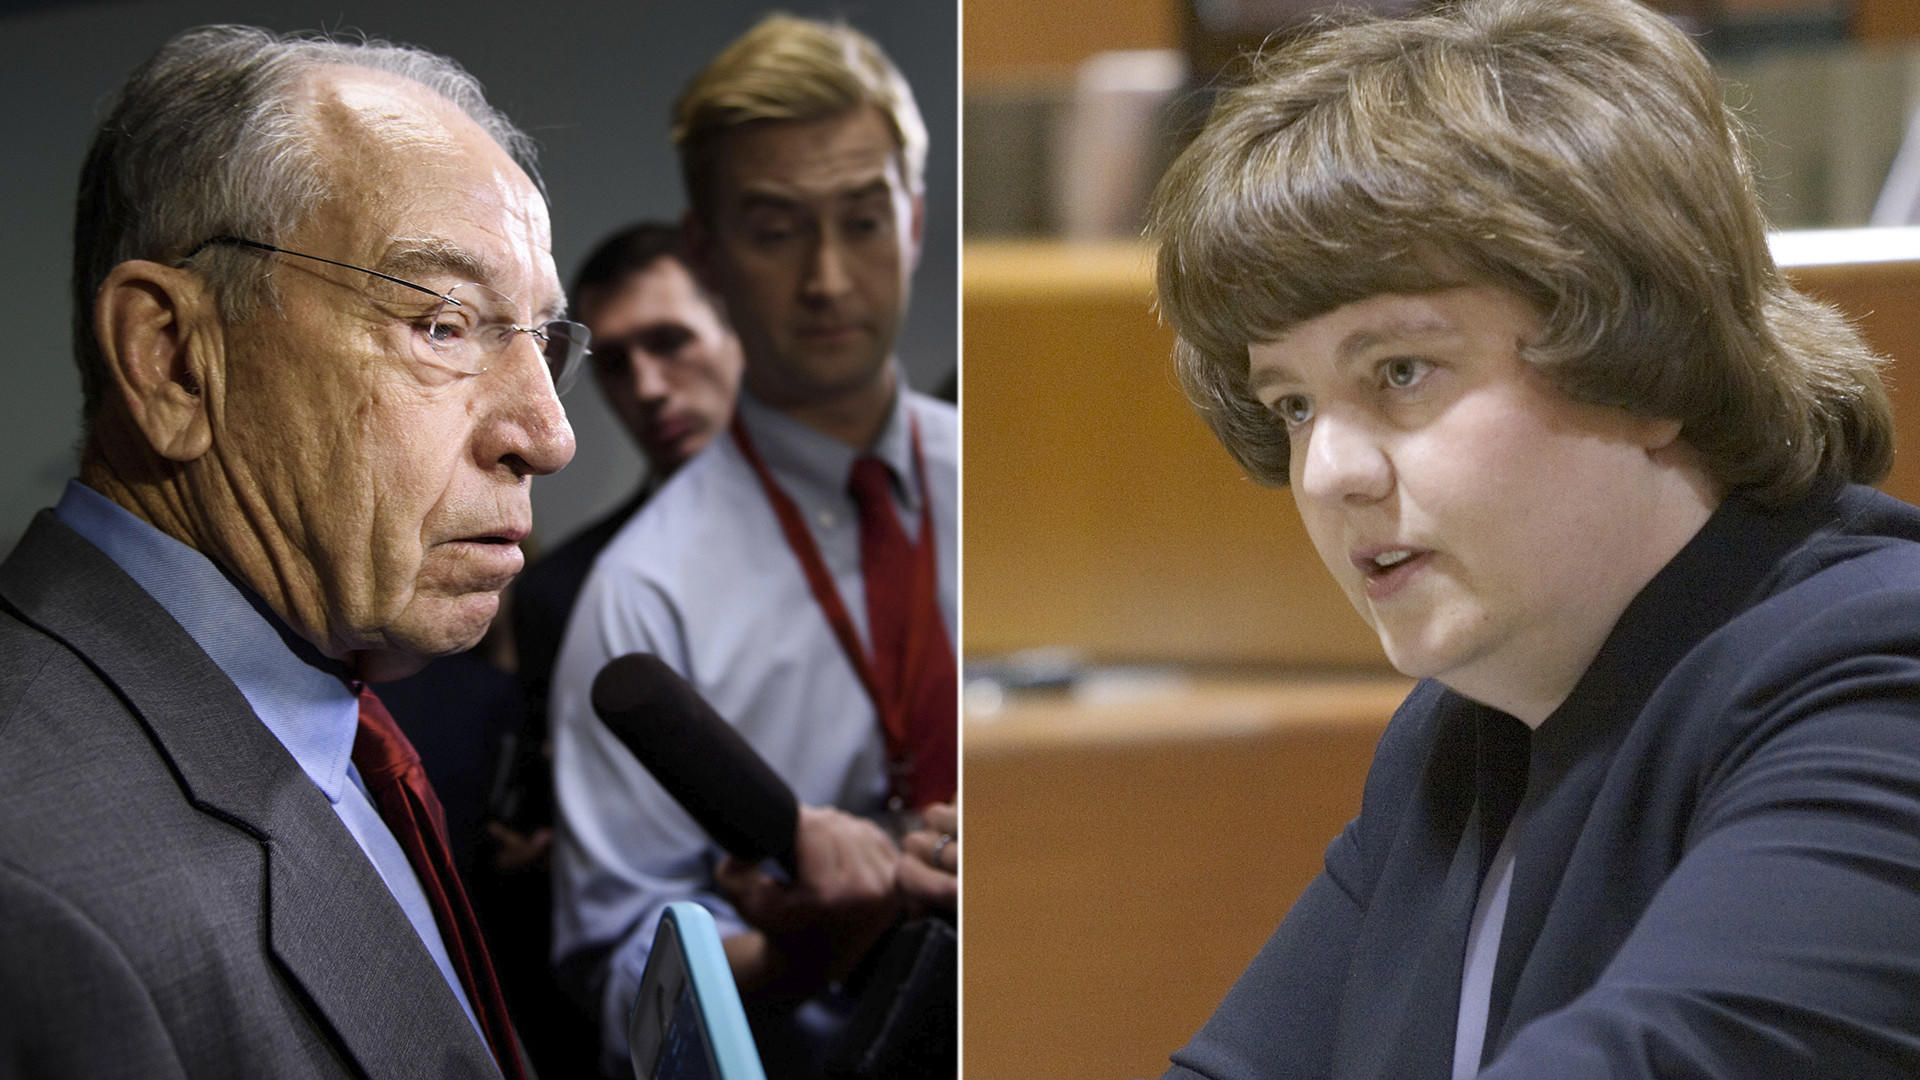 Lawyer Questioning Ford >> Gop Men Let Lady Attorney Ask Lady Accuser Questions About Fine Man